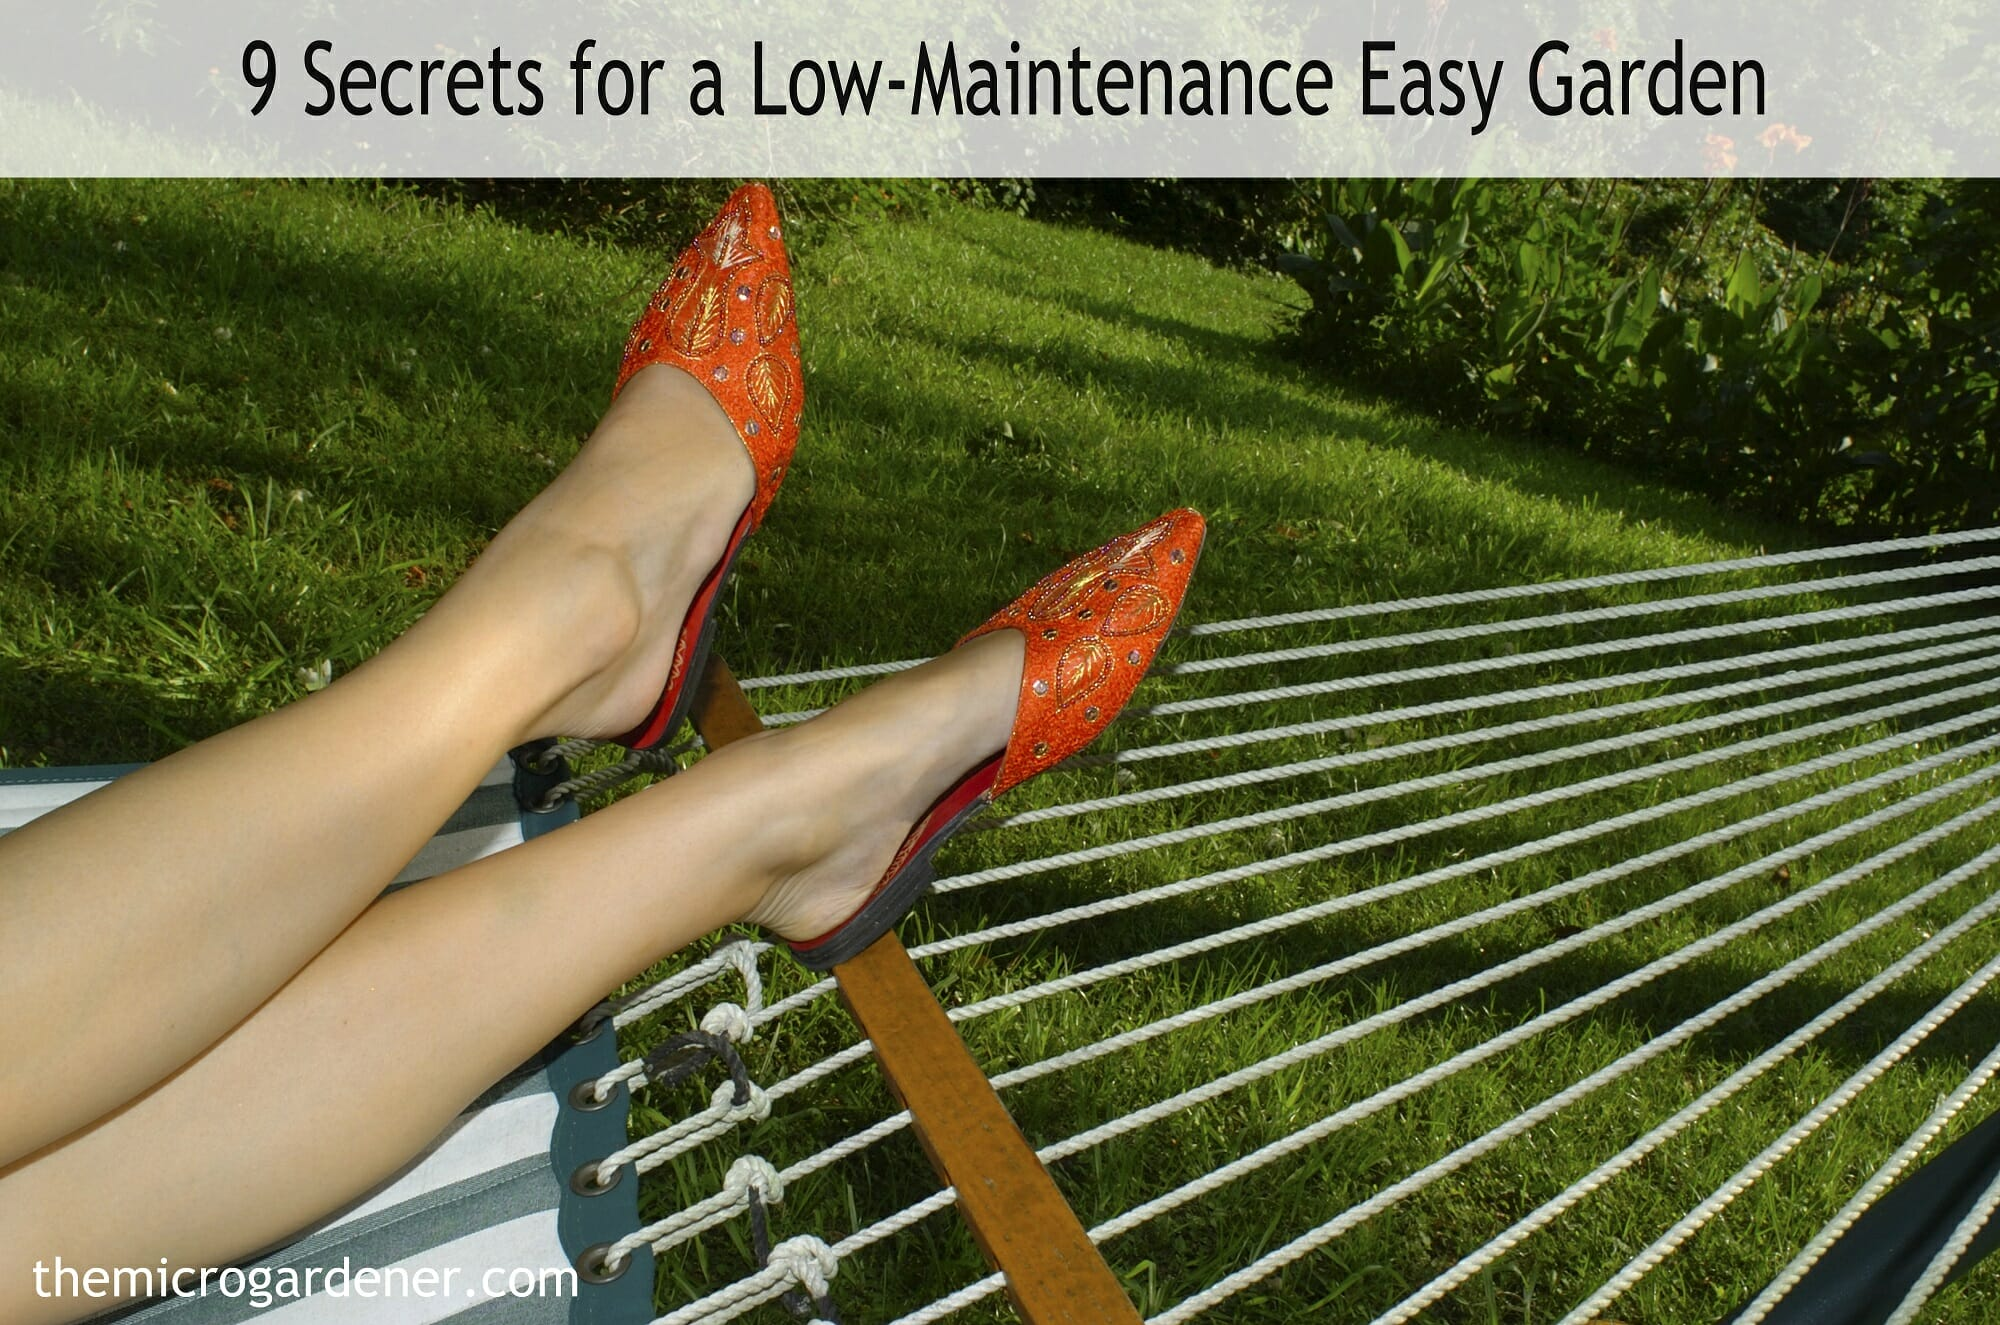 9-Secrets-for-a-Low-Maintenance-Easy-Garden-wm-label-sm